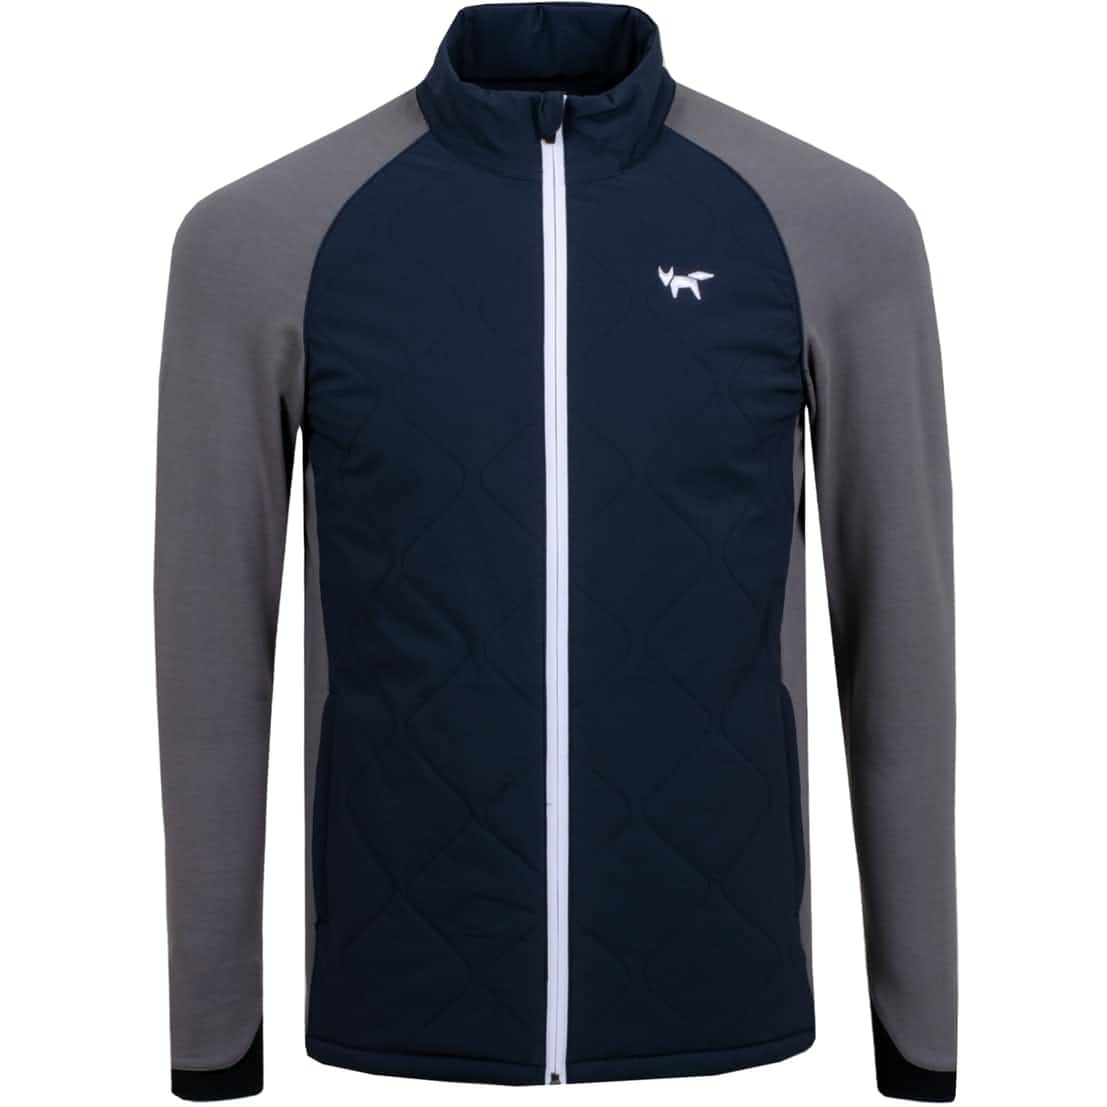 Wolsey Insulator Jacket Total Eclipse - AW19